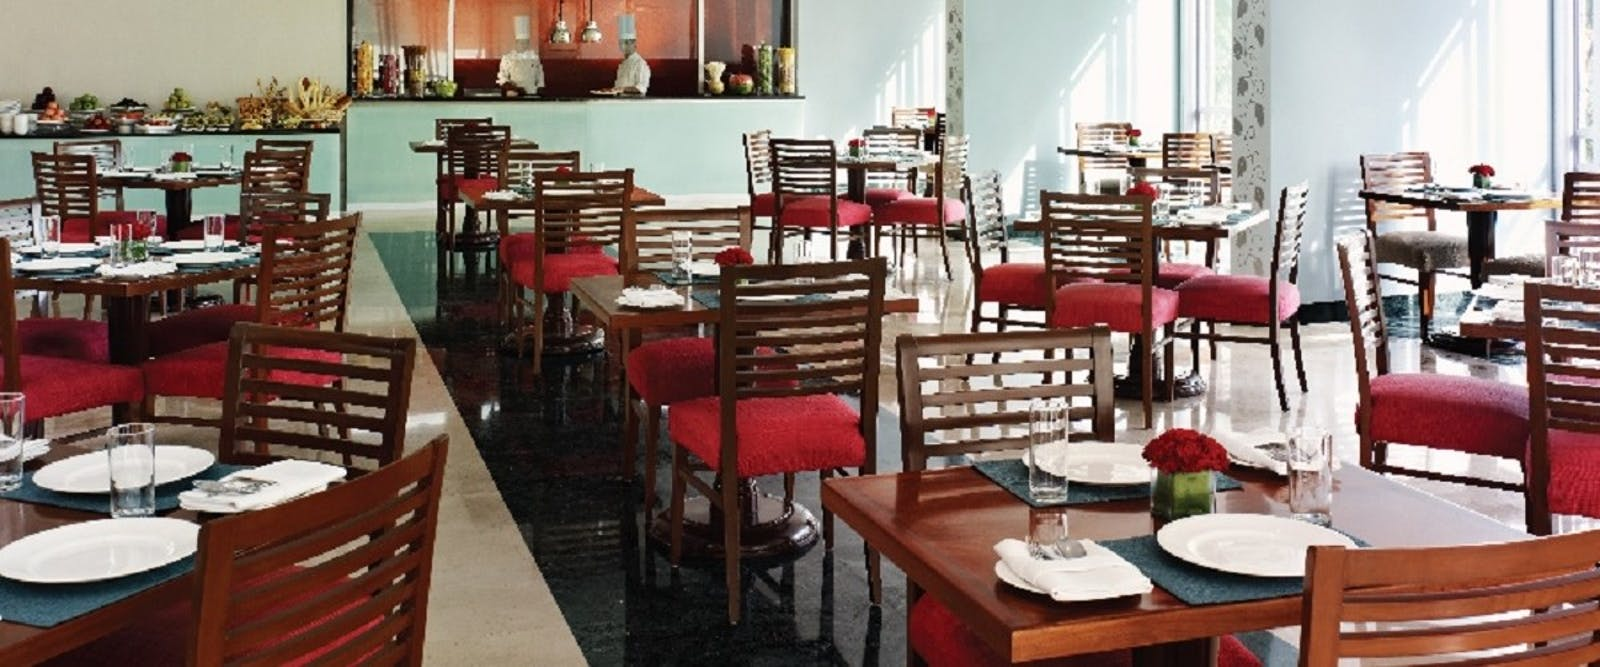 Restaurant at The Gateway Hotel Fatehabad Road Agra